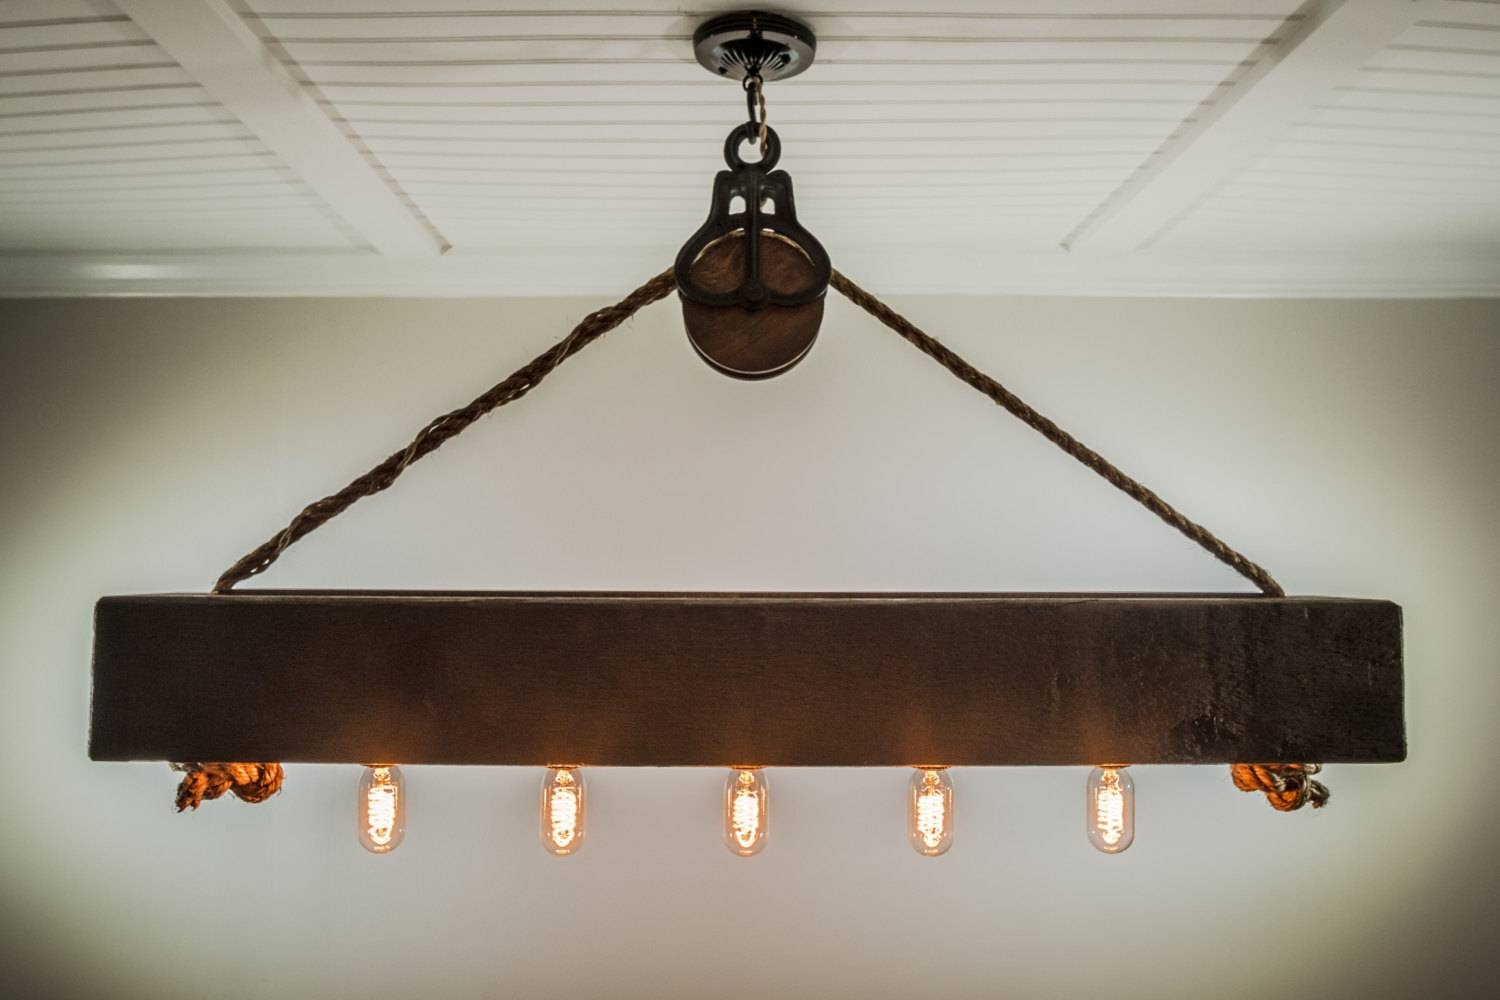 4 Ft Rustic Beam Edison Bulb Chandelier With Vintage Barn within Pulley Lights Fixture (Image 1 of 15)